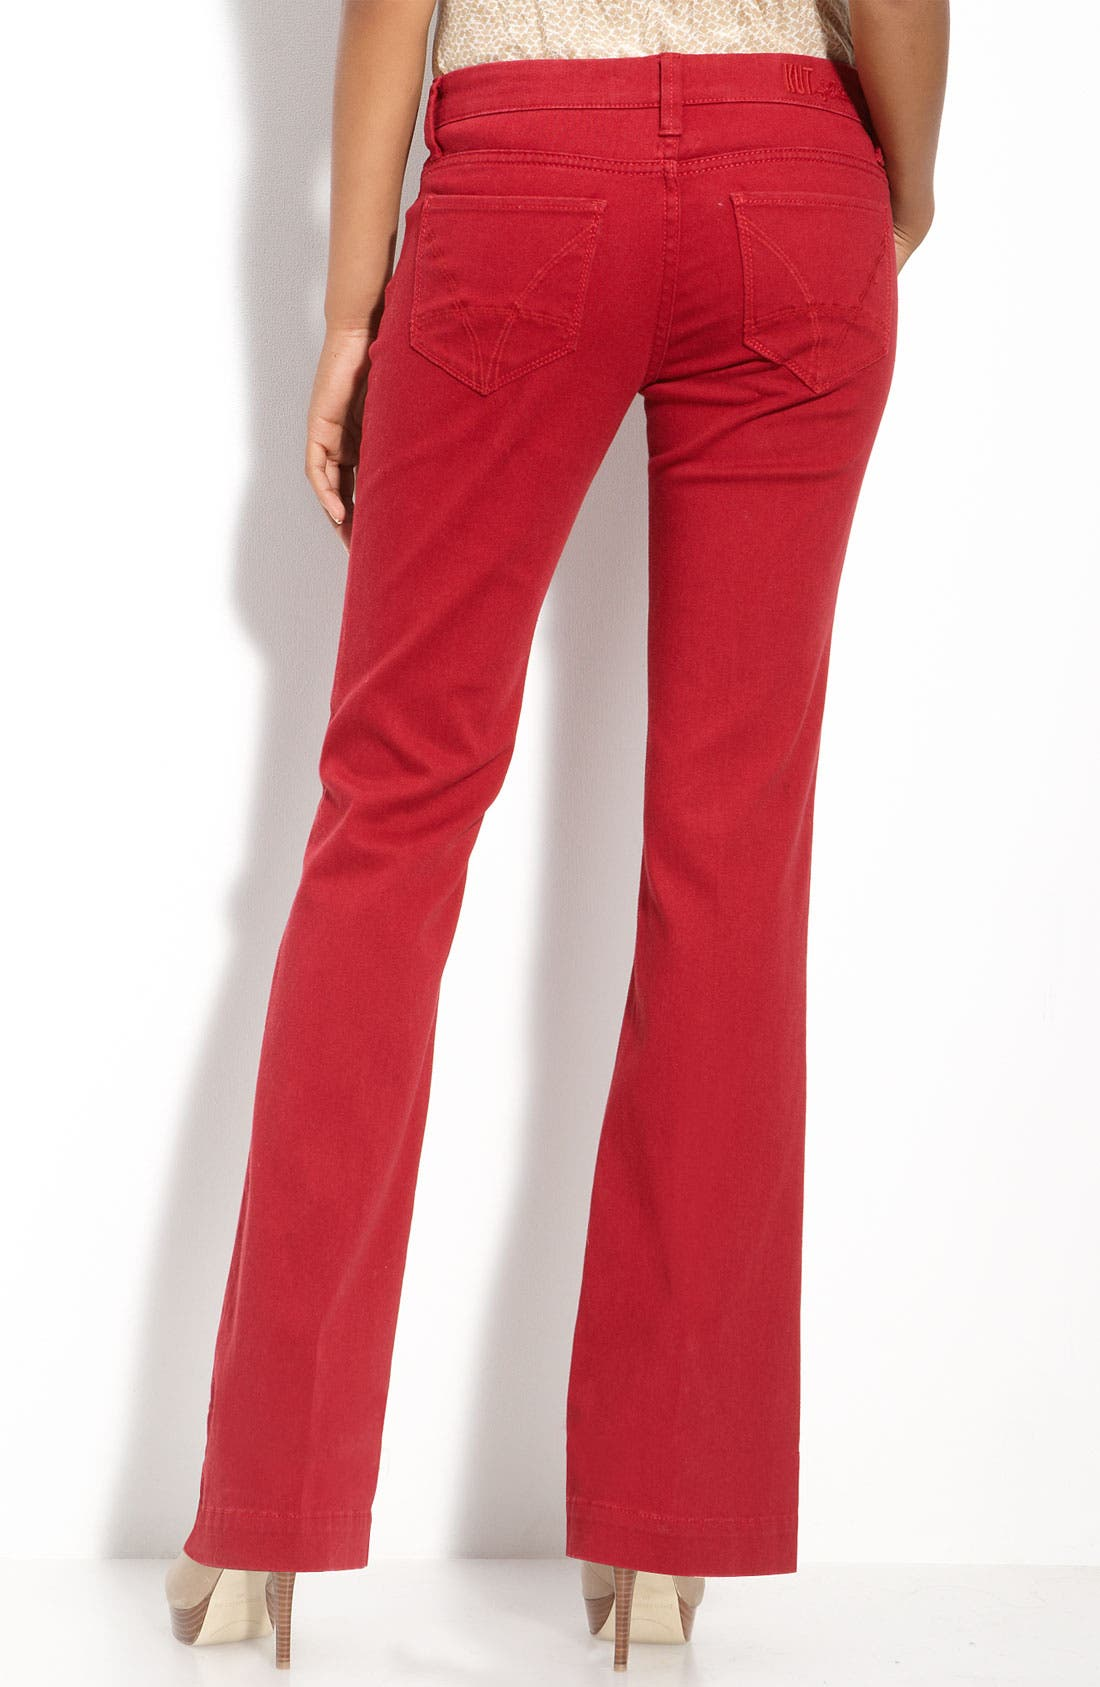 Alternate Image 1 Selected - KUT from the Kloth Colored Denim Flare Leg Jeans